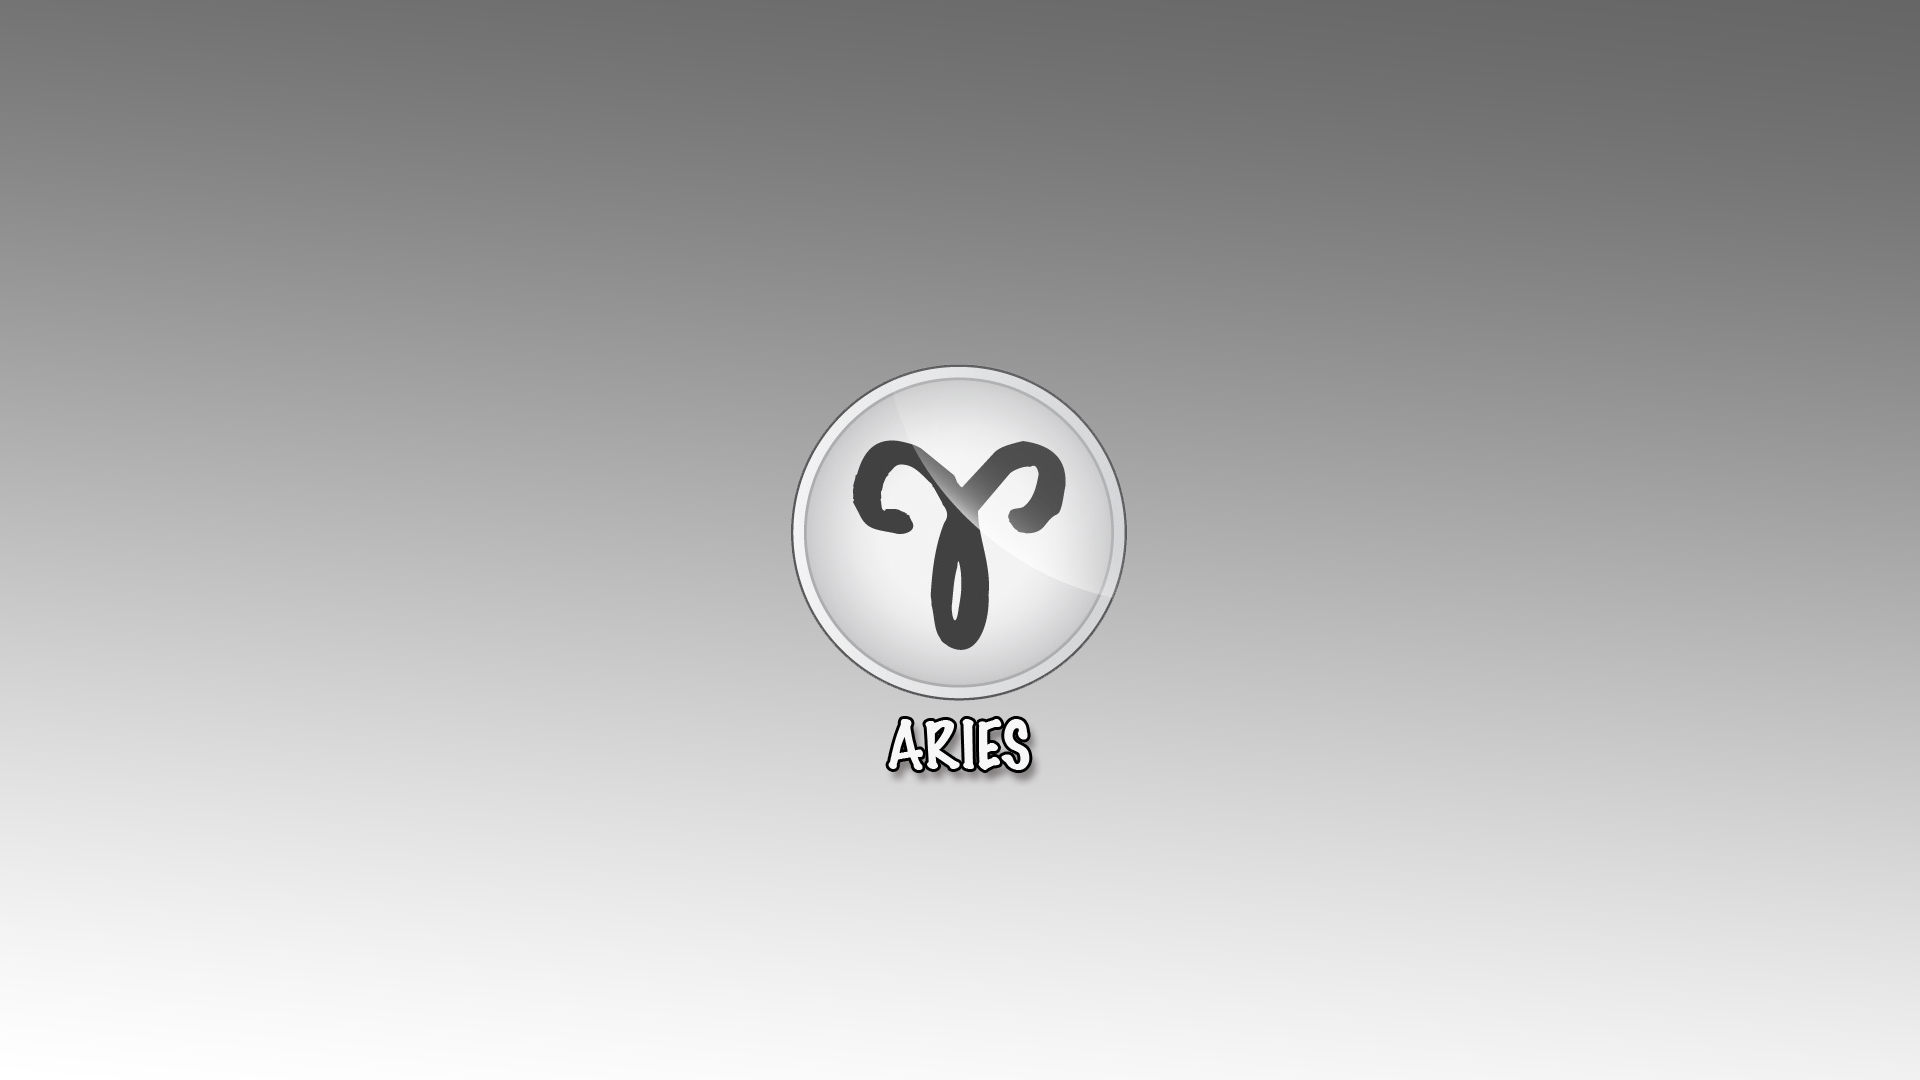 Aries Wallpaper Hd 12437 Hd Wallpapers in Zodiac   Imagescicom 1920x1080